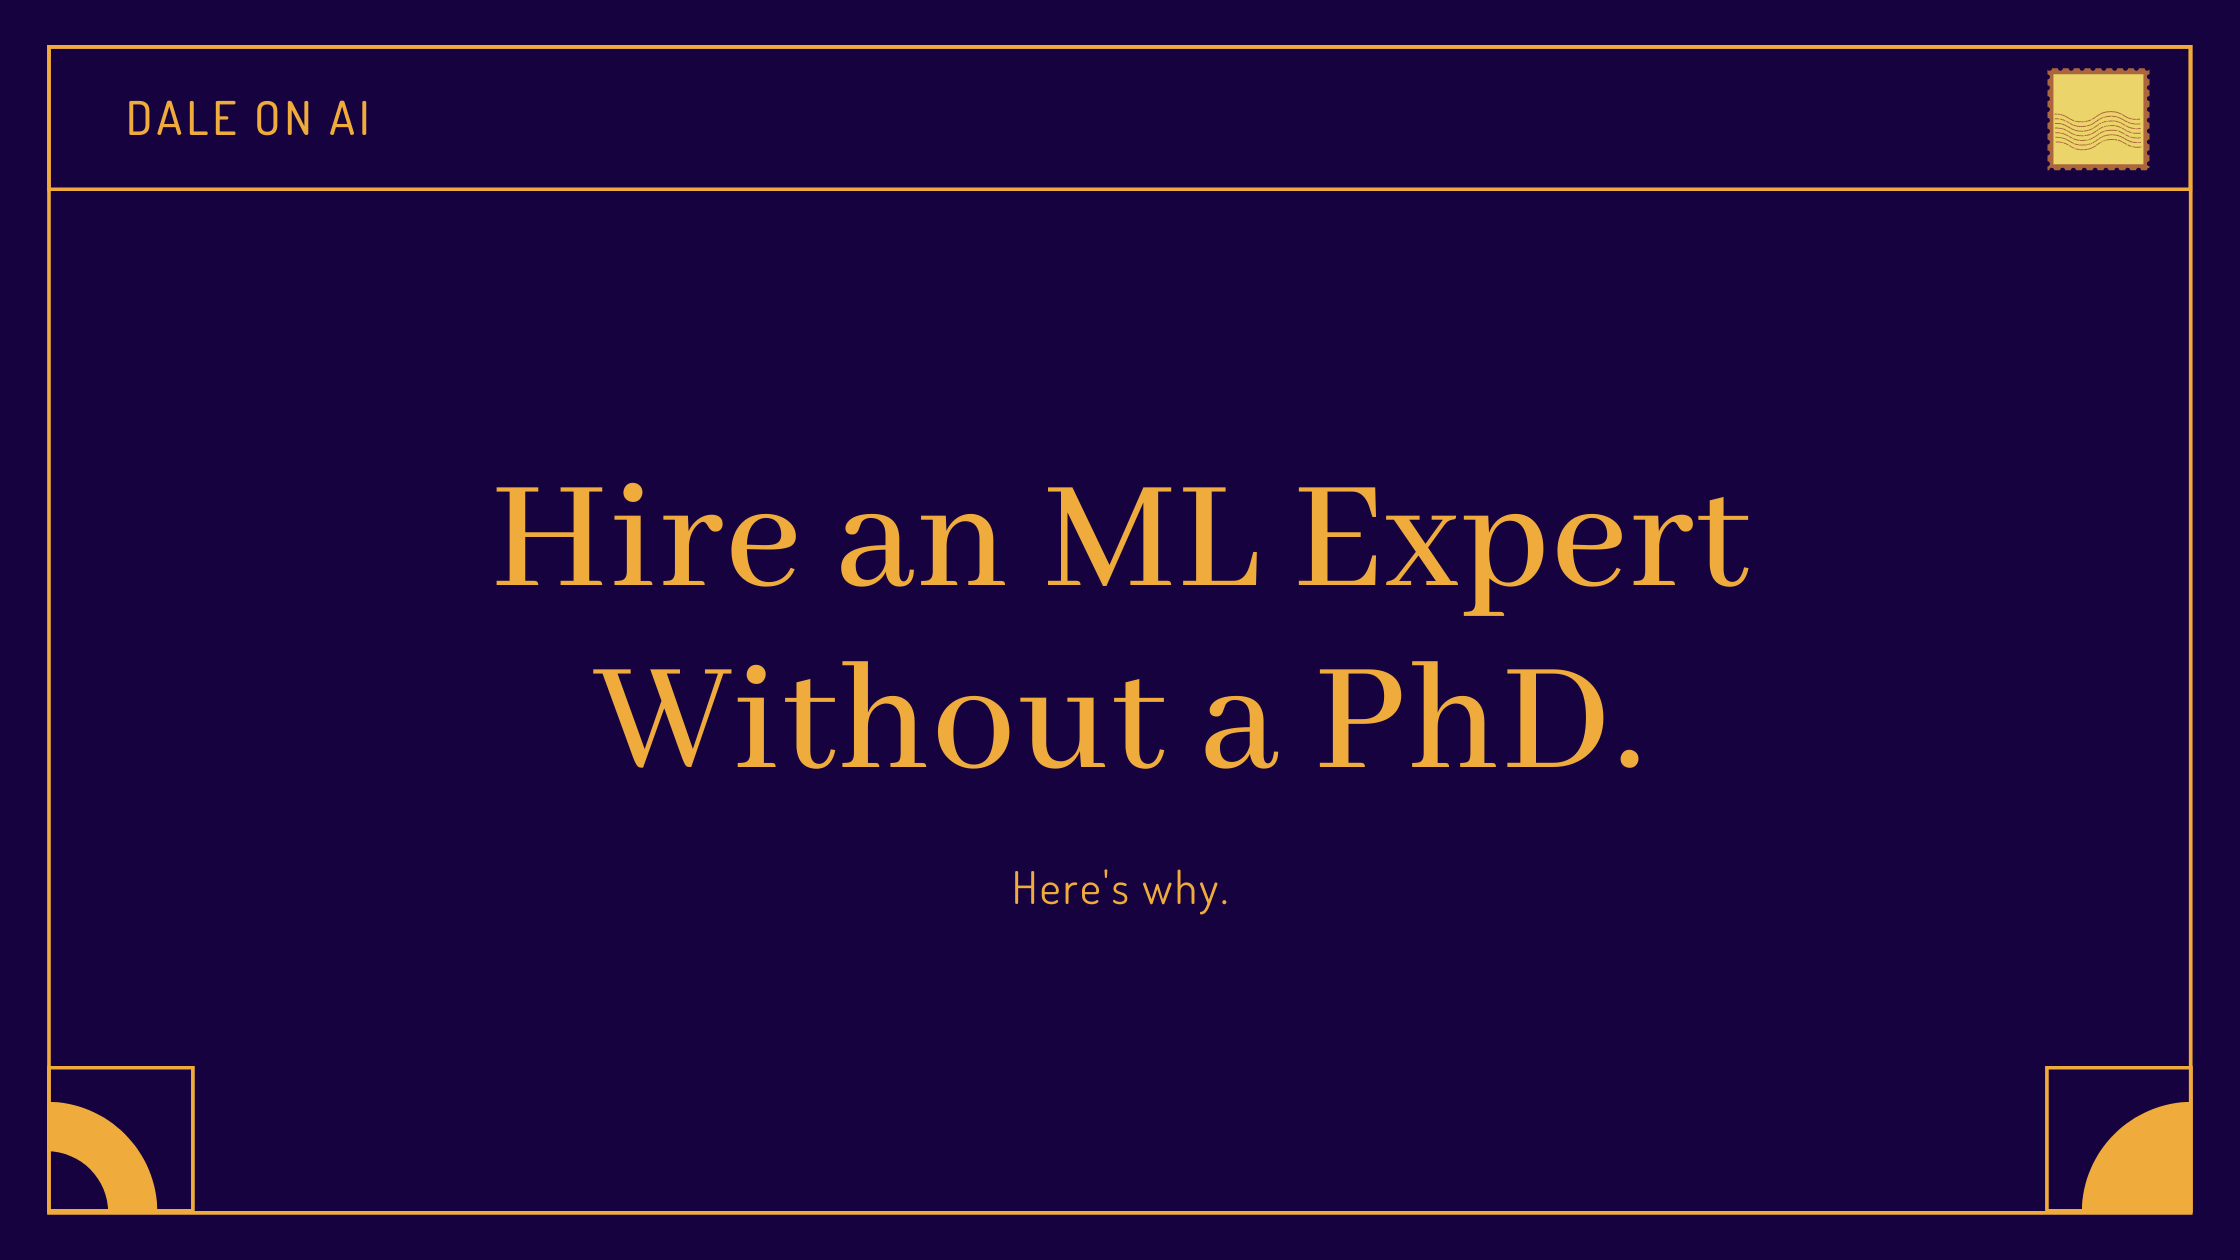 Employers: Your Machine Learning Hires Don't Need PhDs or Masters Degrees